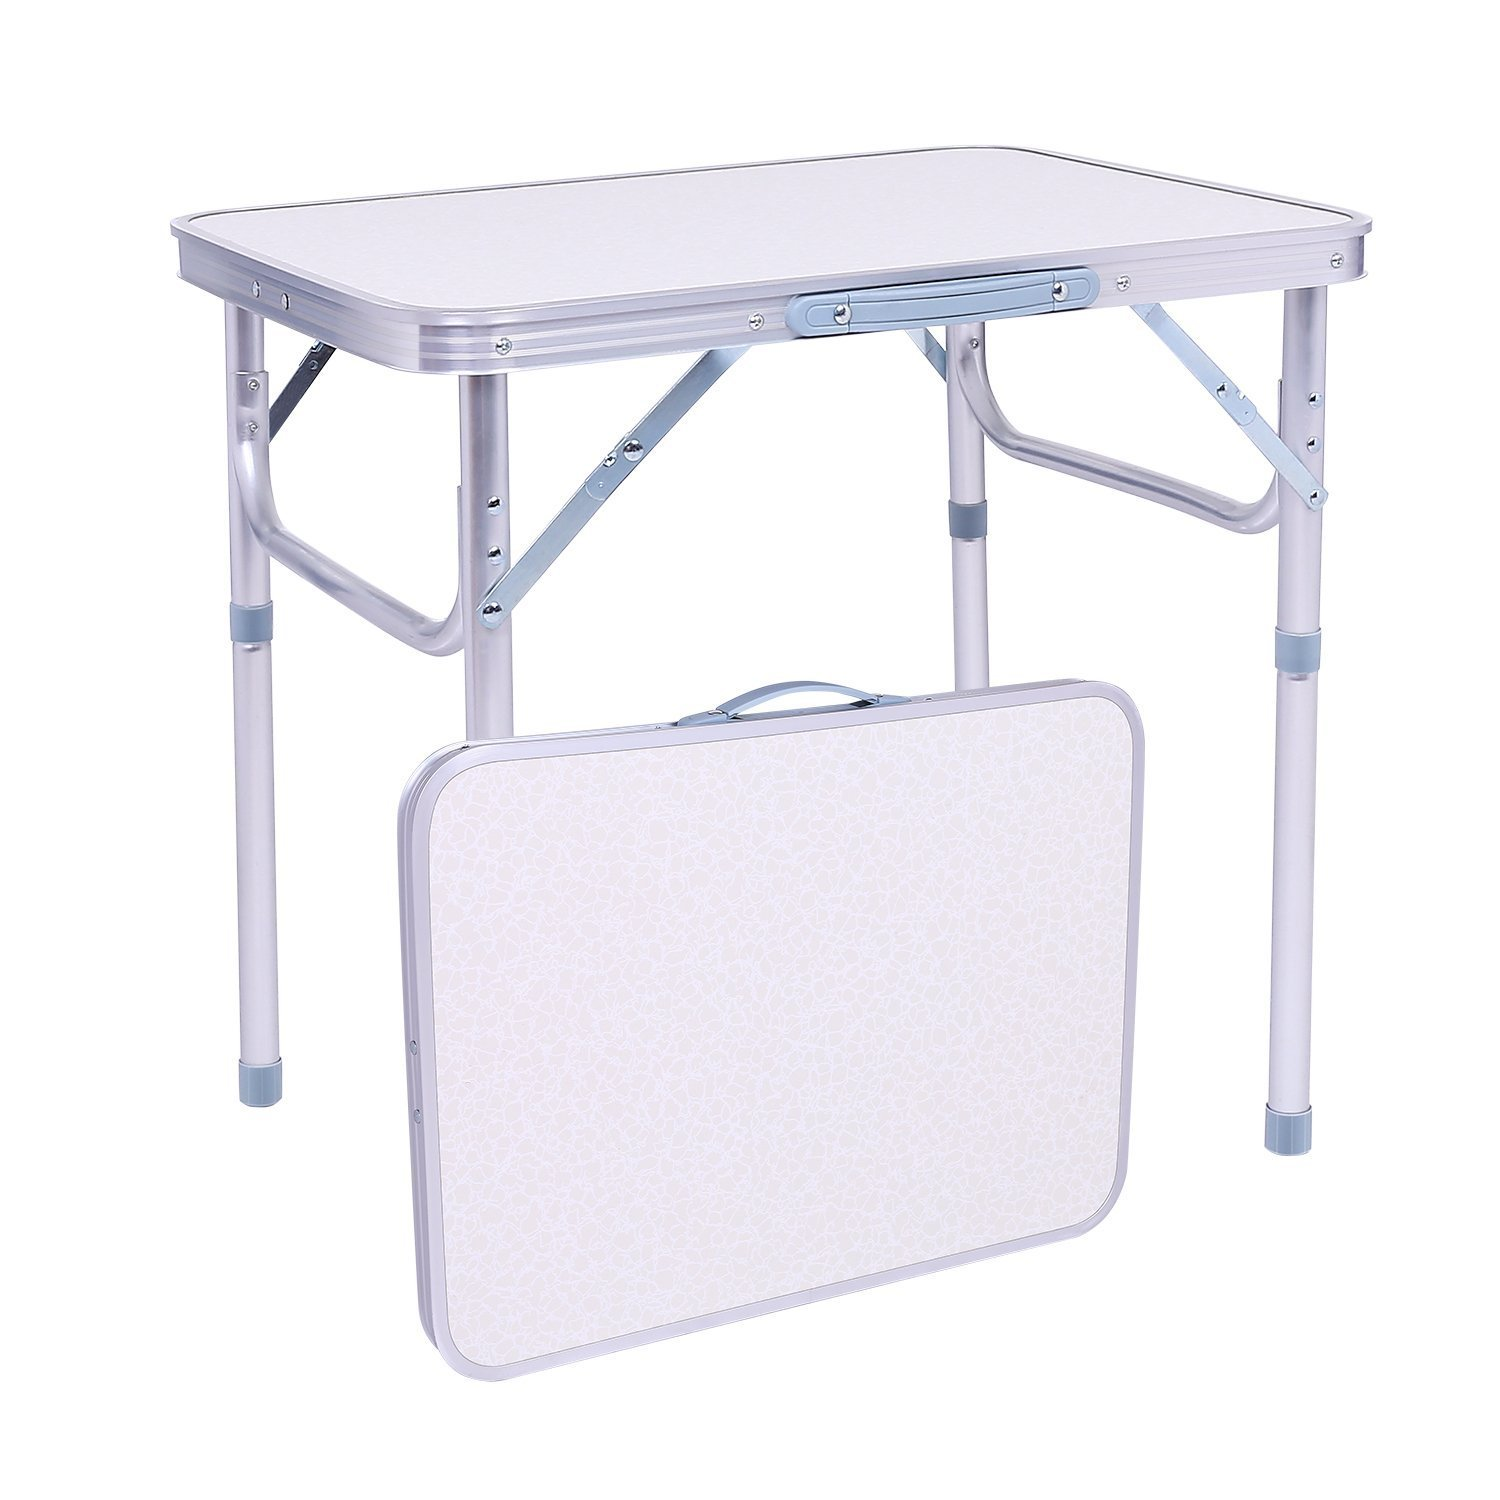 Utheing Lightweight Portable Adjustable Folding Table with Carrying Handle for Outdoor Picnic Camping